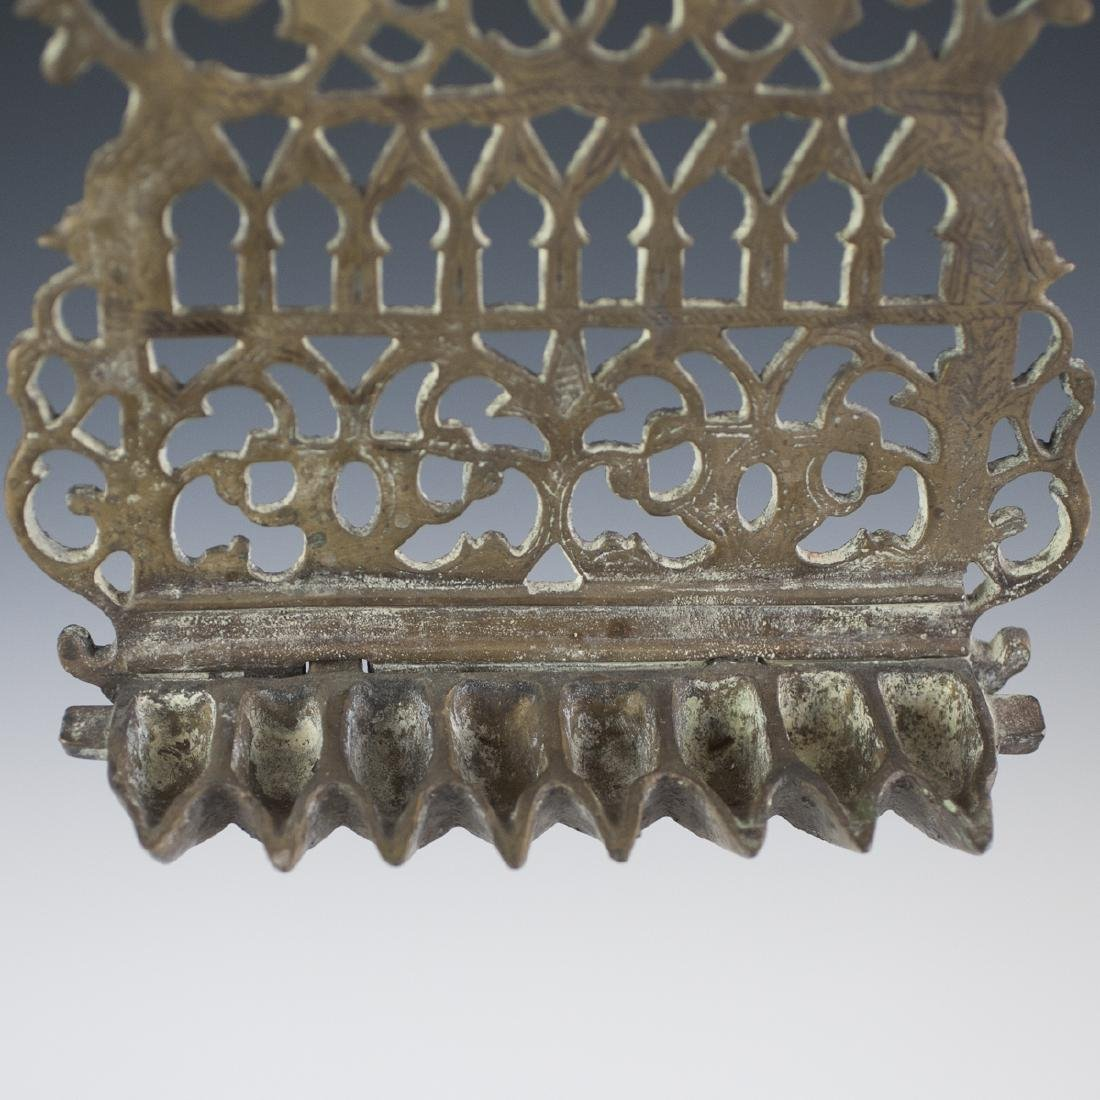 Antique Moroccan Bronze Oil Menorah - 4